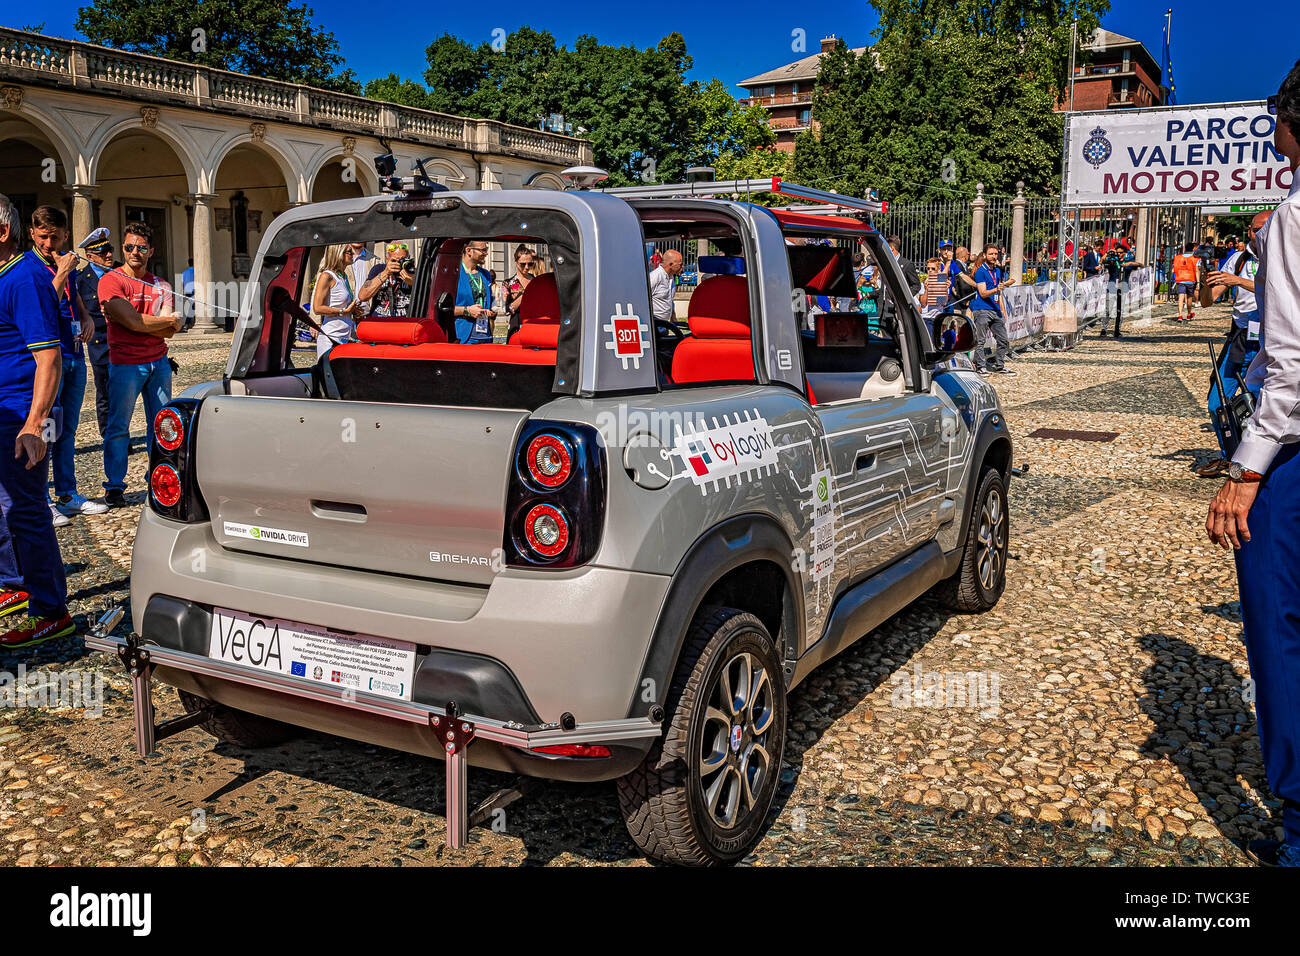 "Piedmont Turin - Turin auto show 2019  - Valentino park - Valentino castle -Smart Road"" project car with autonomous driving on the road Stock Photo"